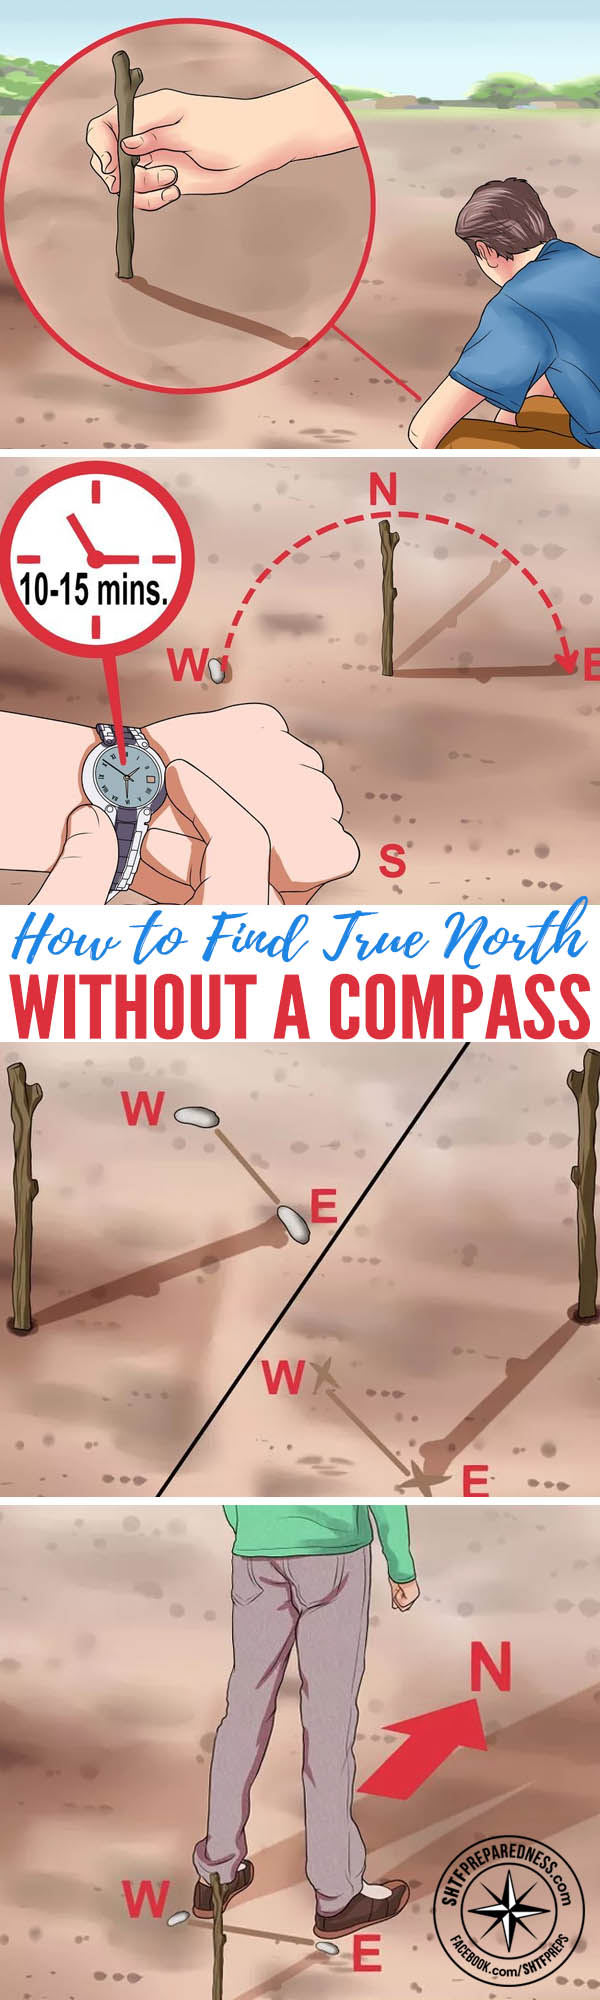 In the event that you have to navigate without landmarks, technology, or even a compass, you need to know how to find true north without a compass.